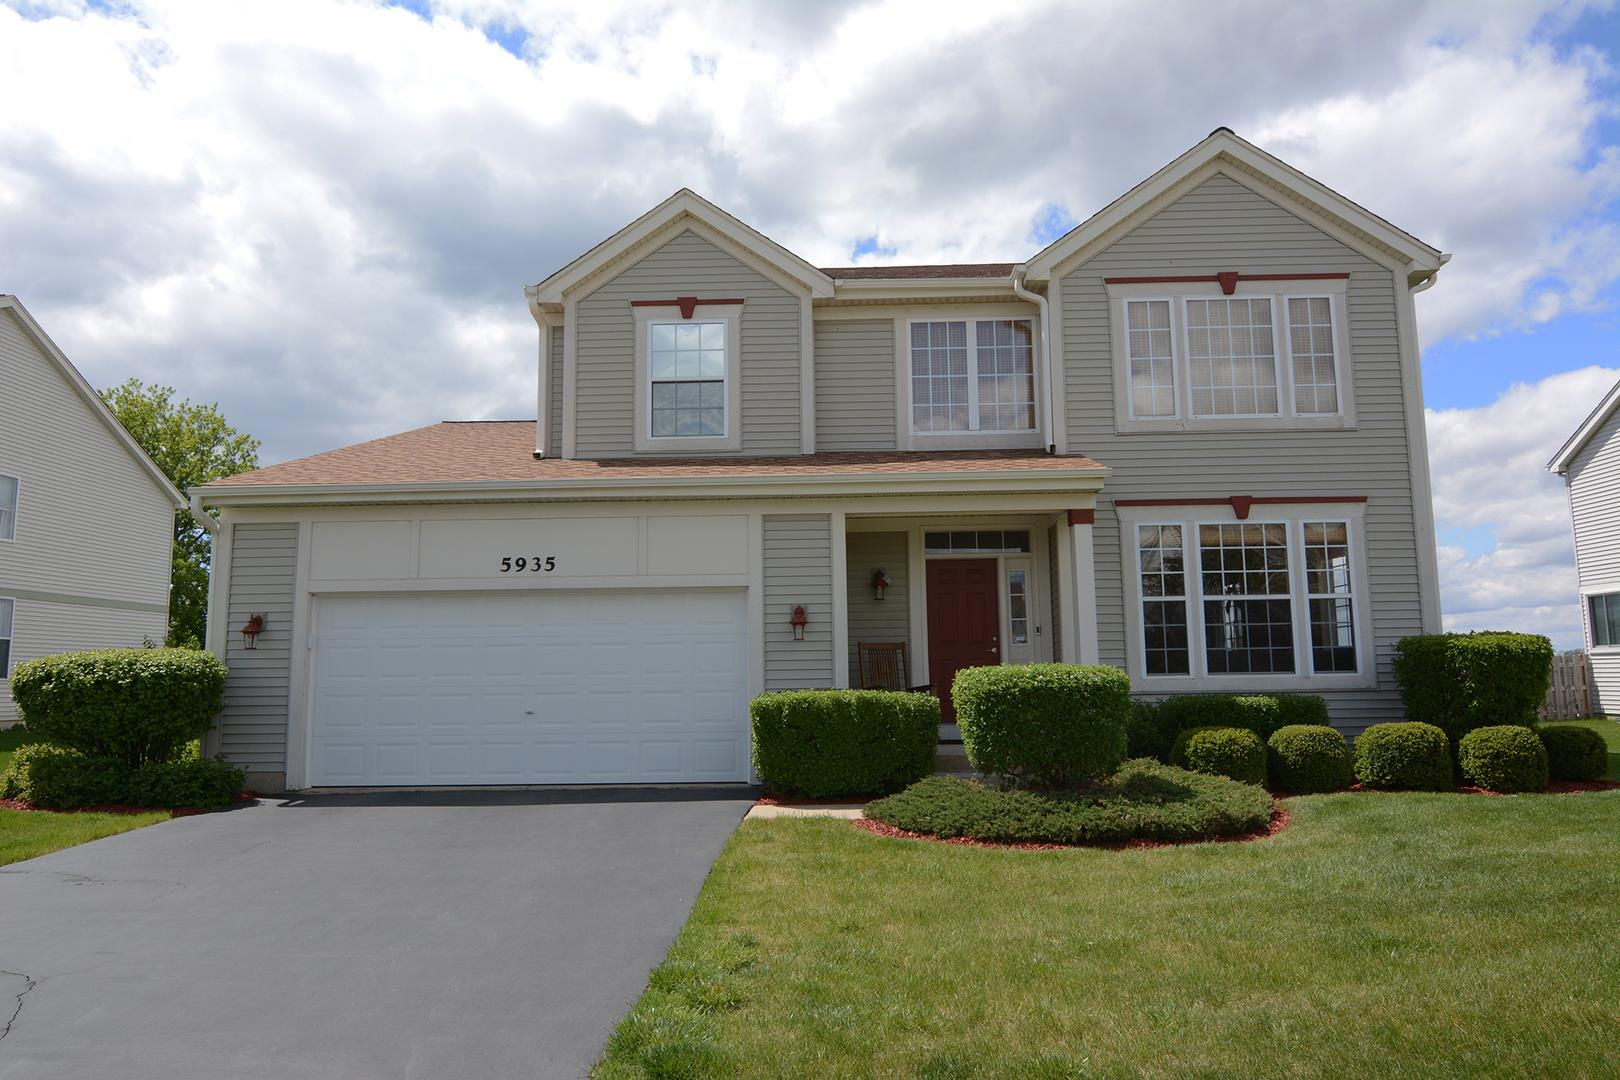 5935 Lucerne Lane, Lake in the Hills, IL 60156 - #: 11079679